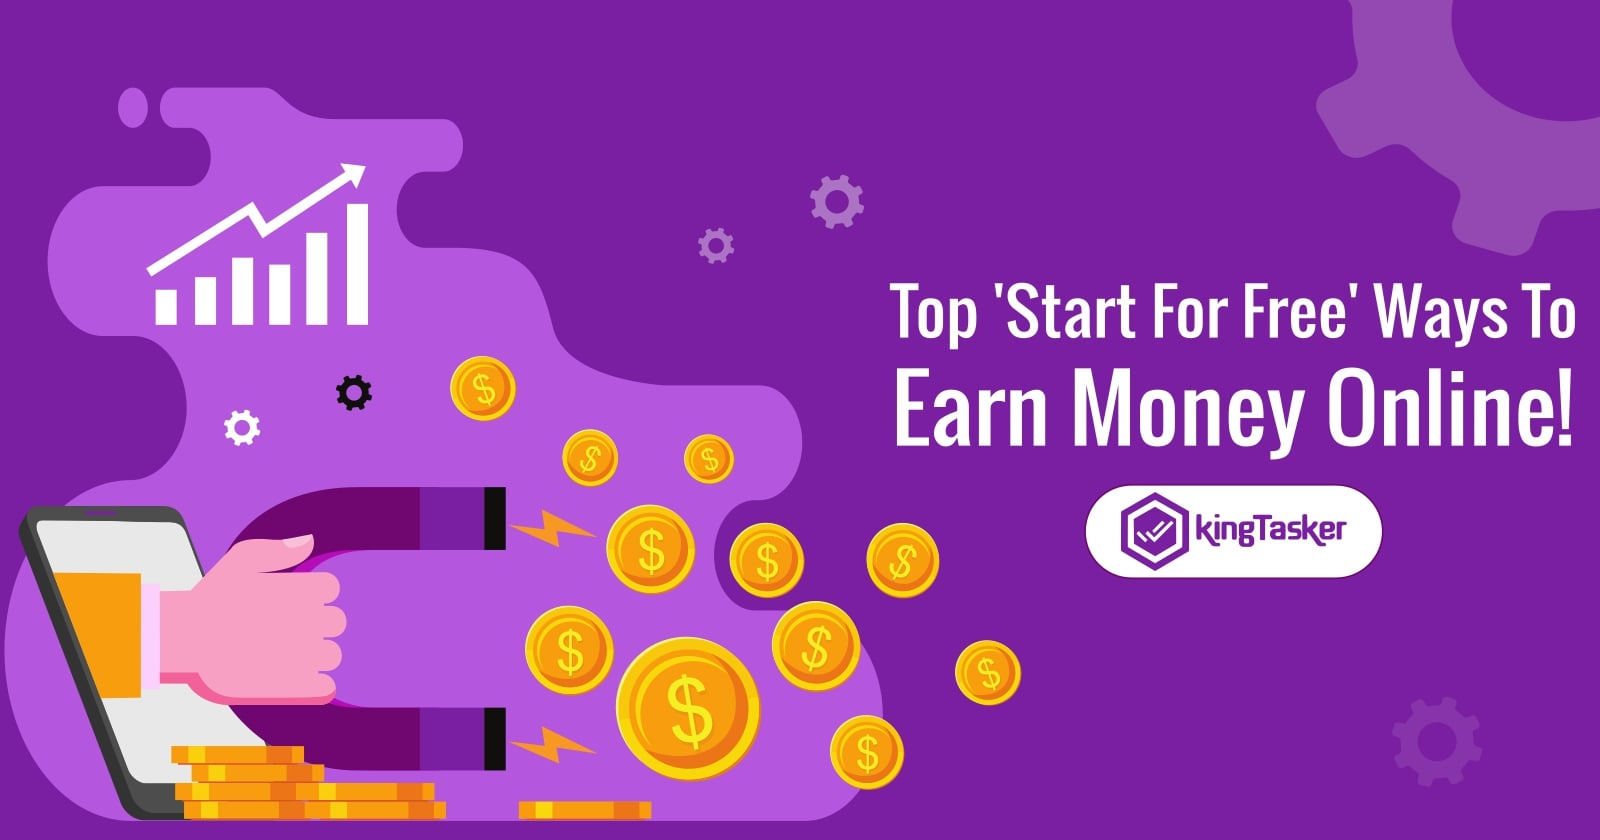 Top 'Start For Free' Ways To Earn Money Online!